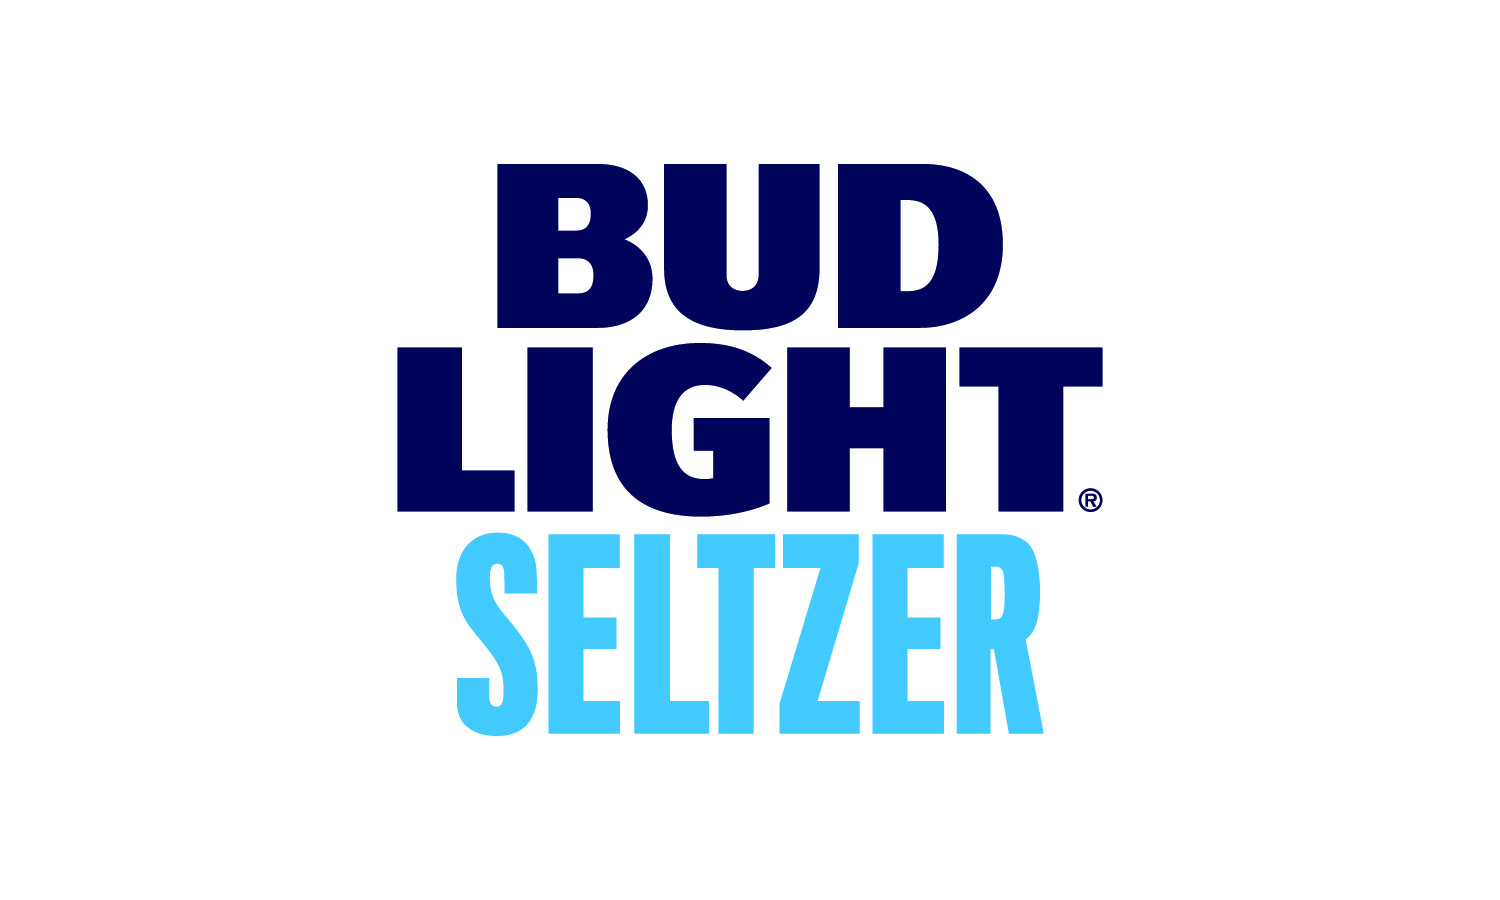 Bud Light Seltzer